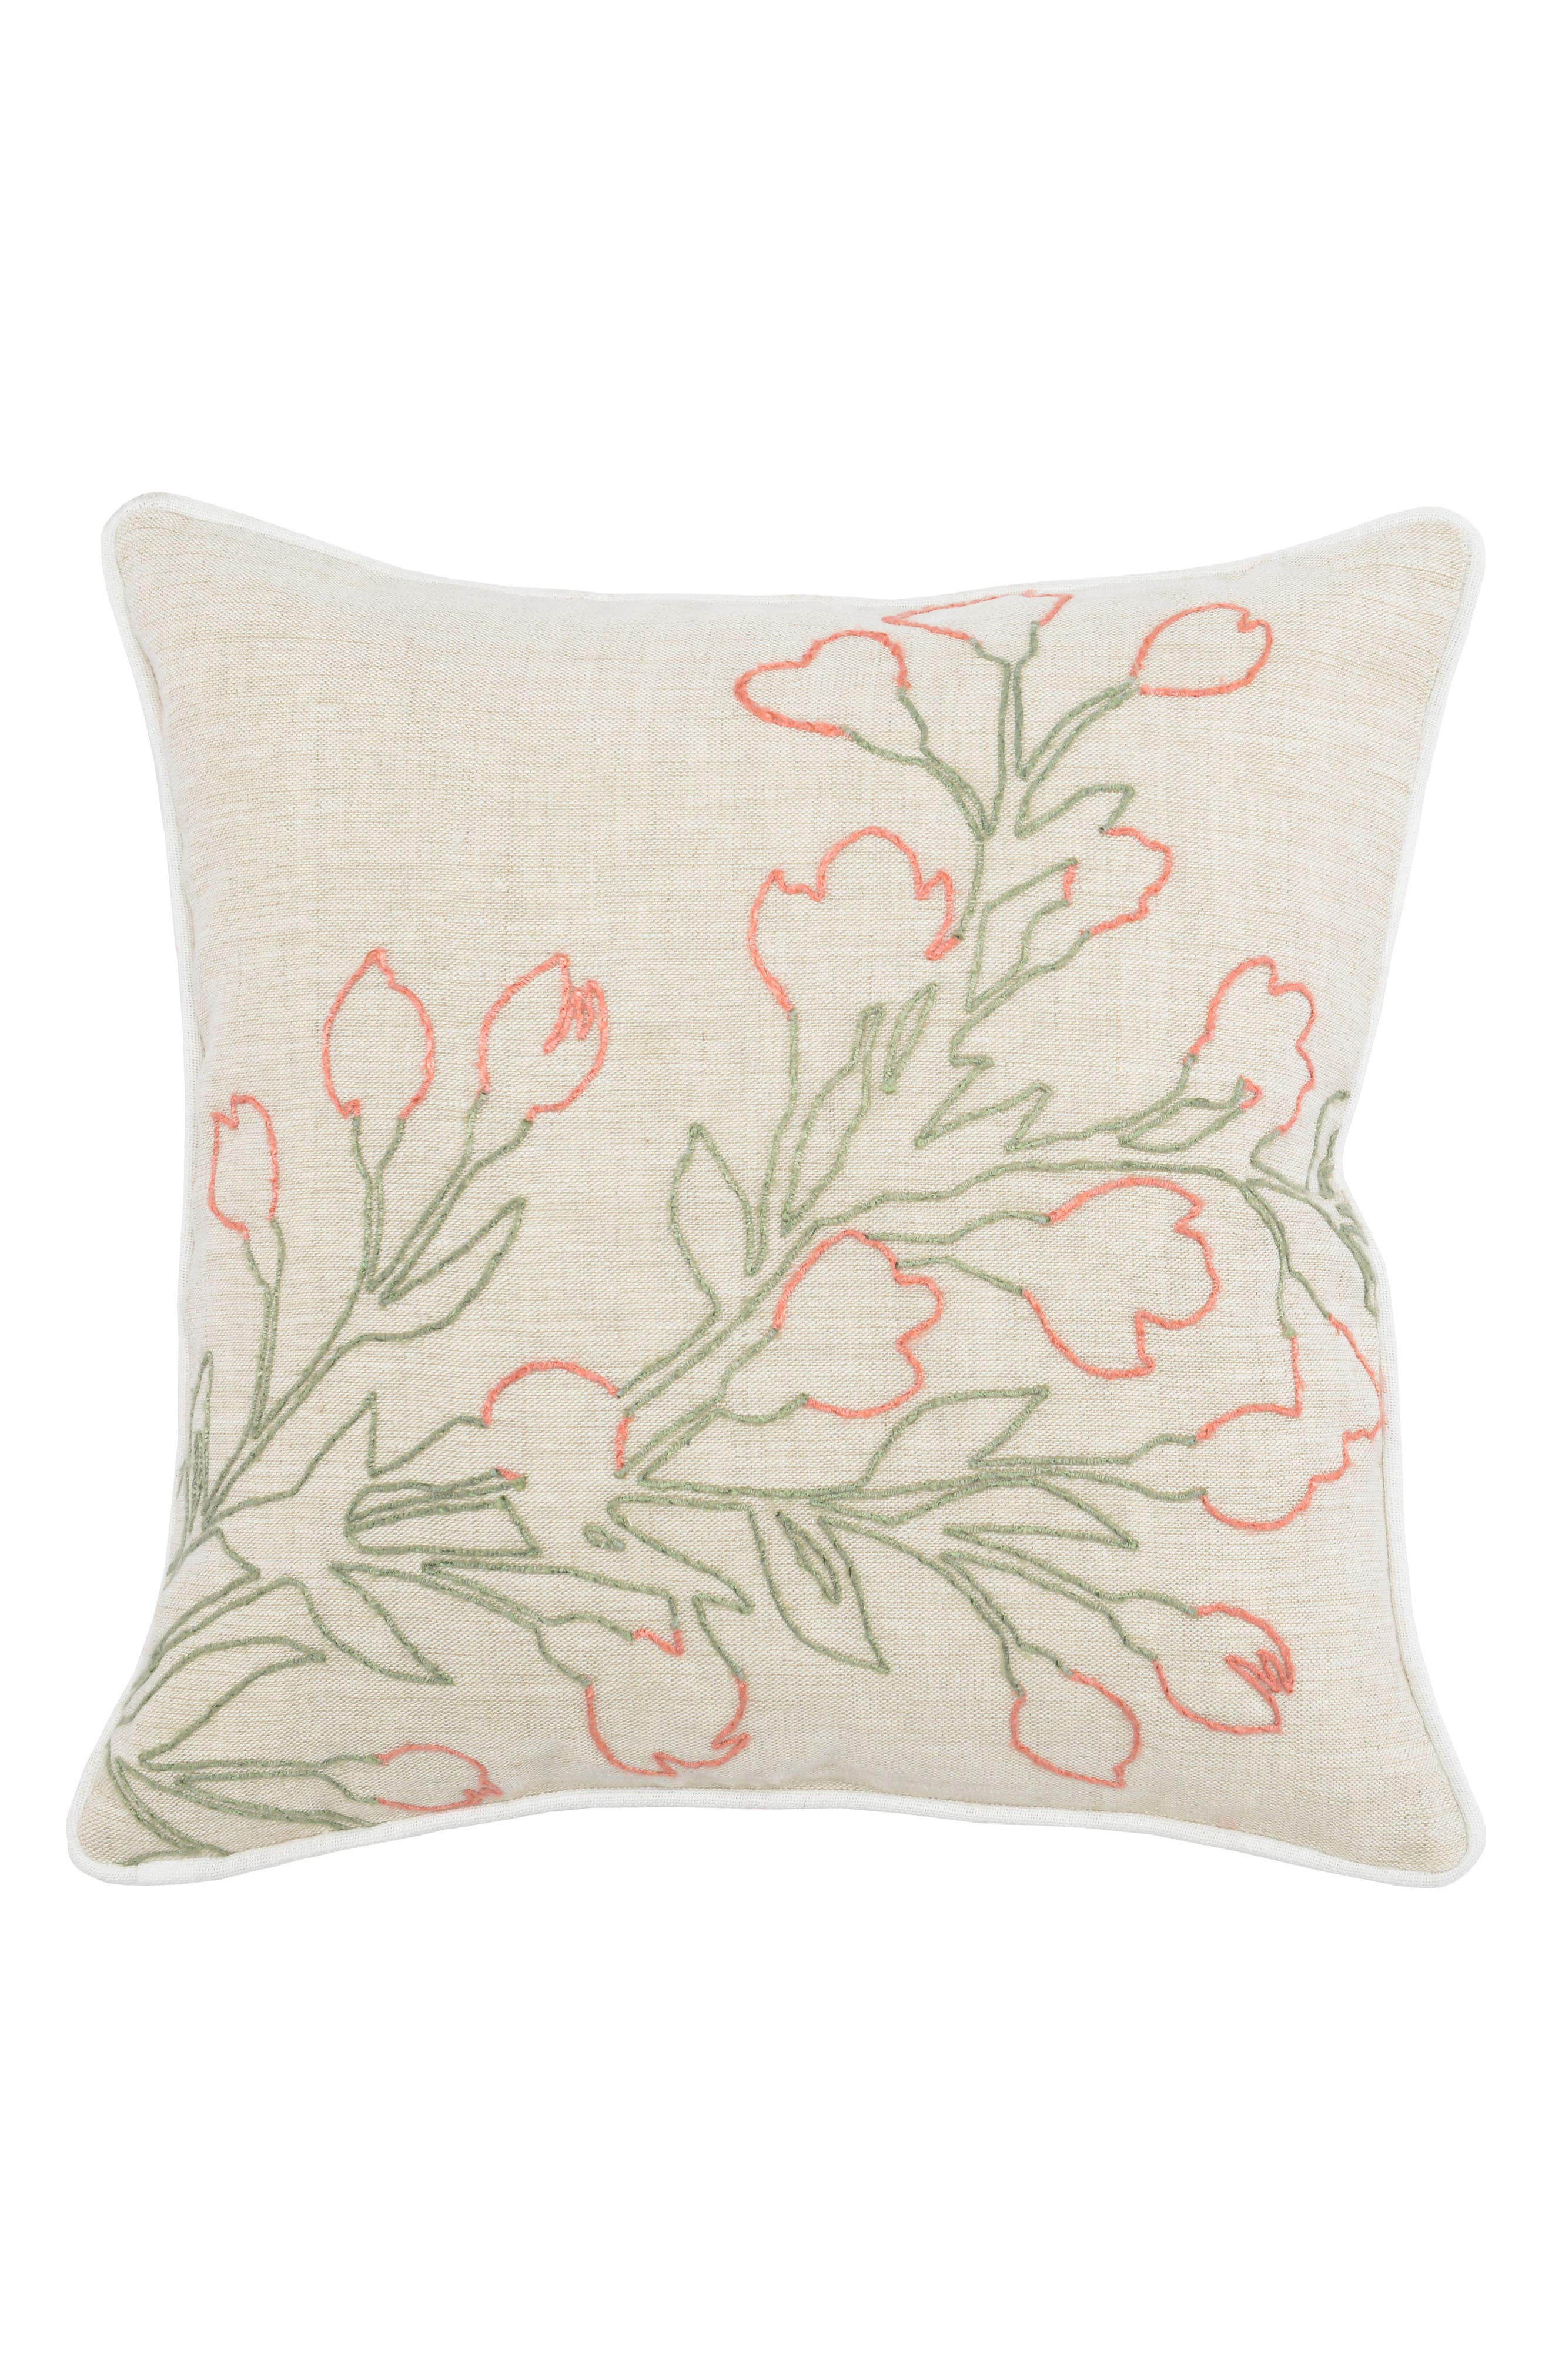 VILLA HOME COLLECTION,                             Emery Accent Pillow,                             Main thumbnail 1, color,                             IVORY/ ROSE/ MINT